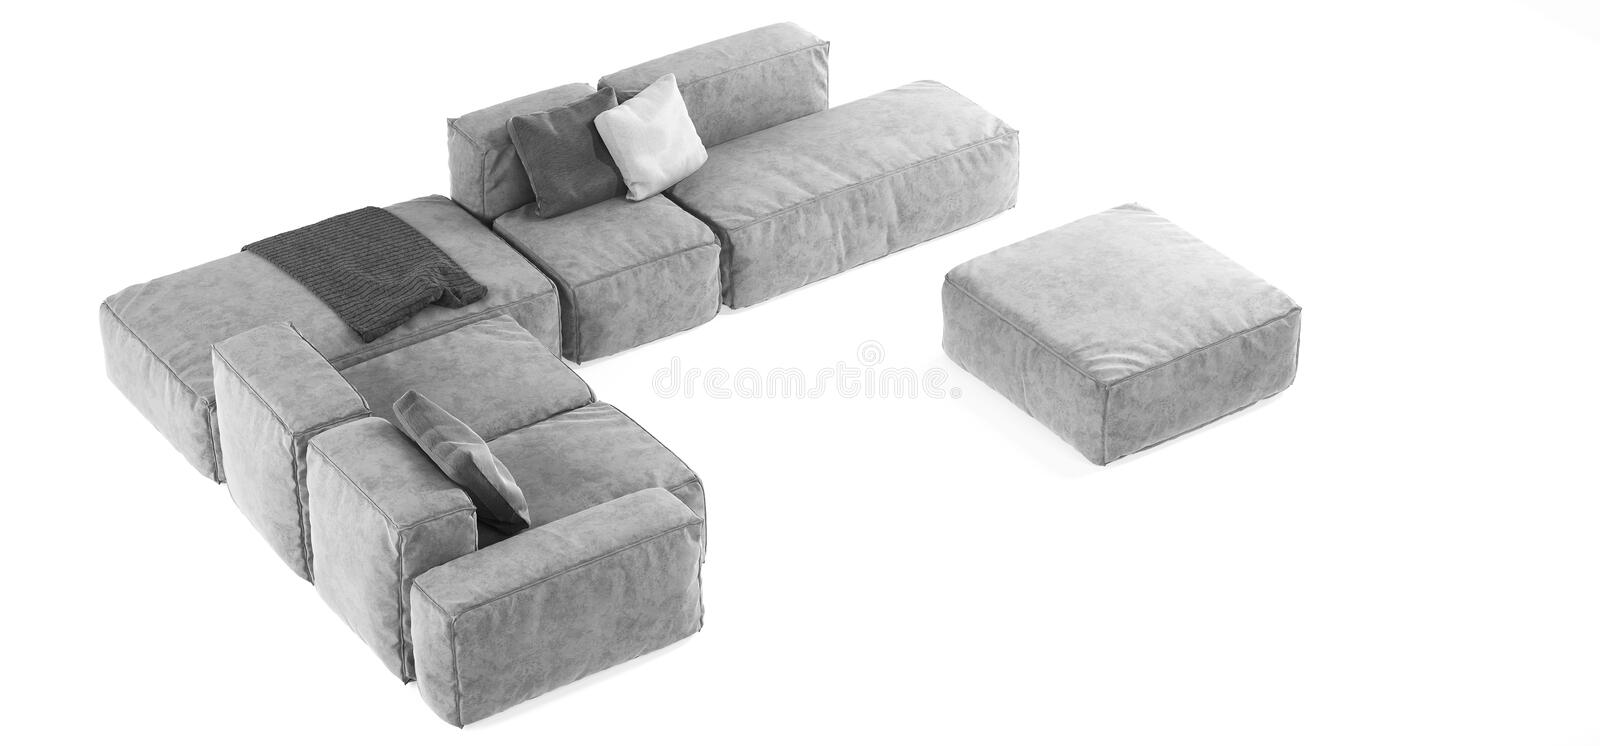 Modern gray modular sofa with pillows and plaid isolated on white background. Furniture, interior object, stylish sofa. High tech. Style, subject for stock photography